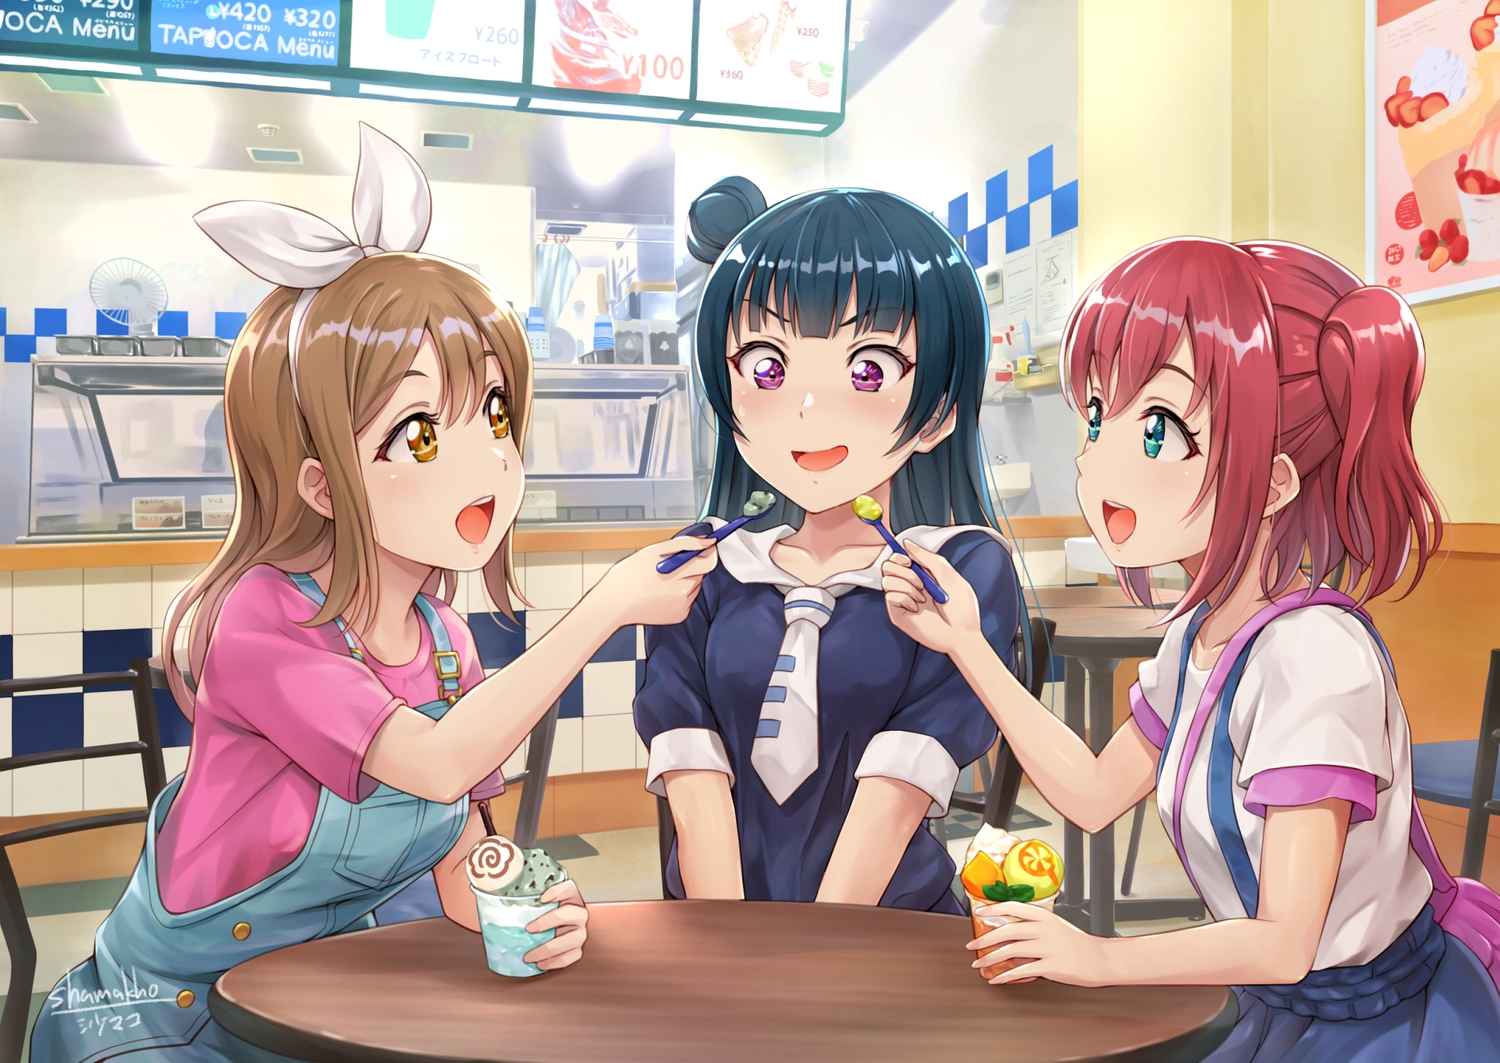 black_hair brown_hair food green_eyes ice_cream kunikida_hanamaru kurosawa_ruby long_hair love_live!_school_idol_project love_live!_sunshine!! purple_eyes red_hair shamakho short_hair signed skirt tie tsushima_yoshiko twintails yellow_eyes